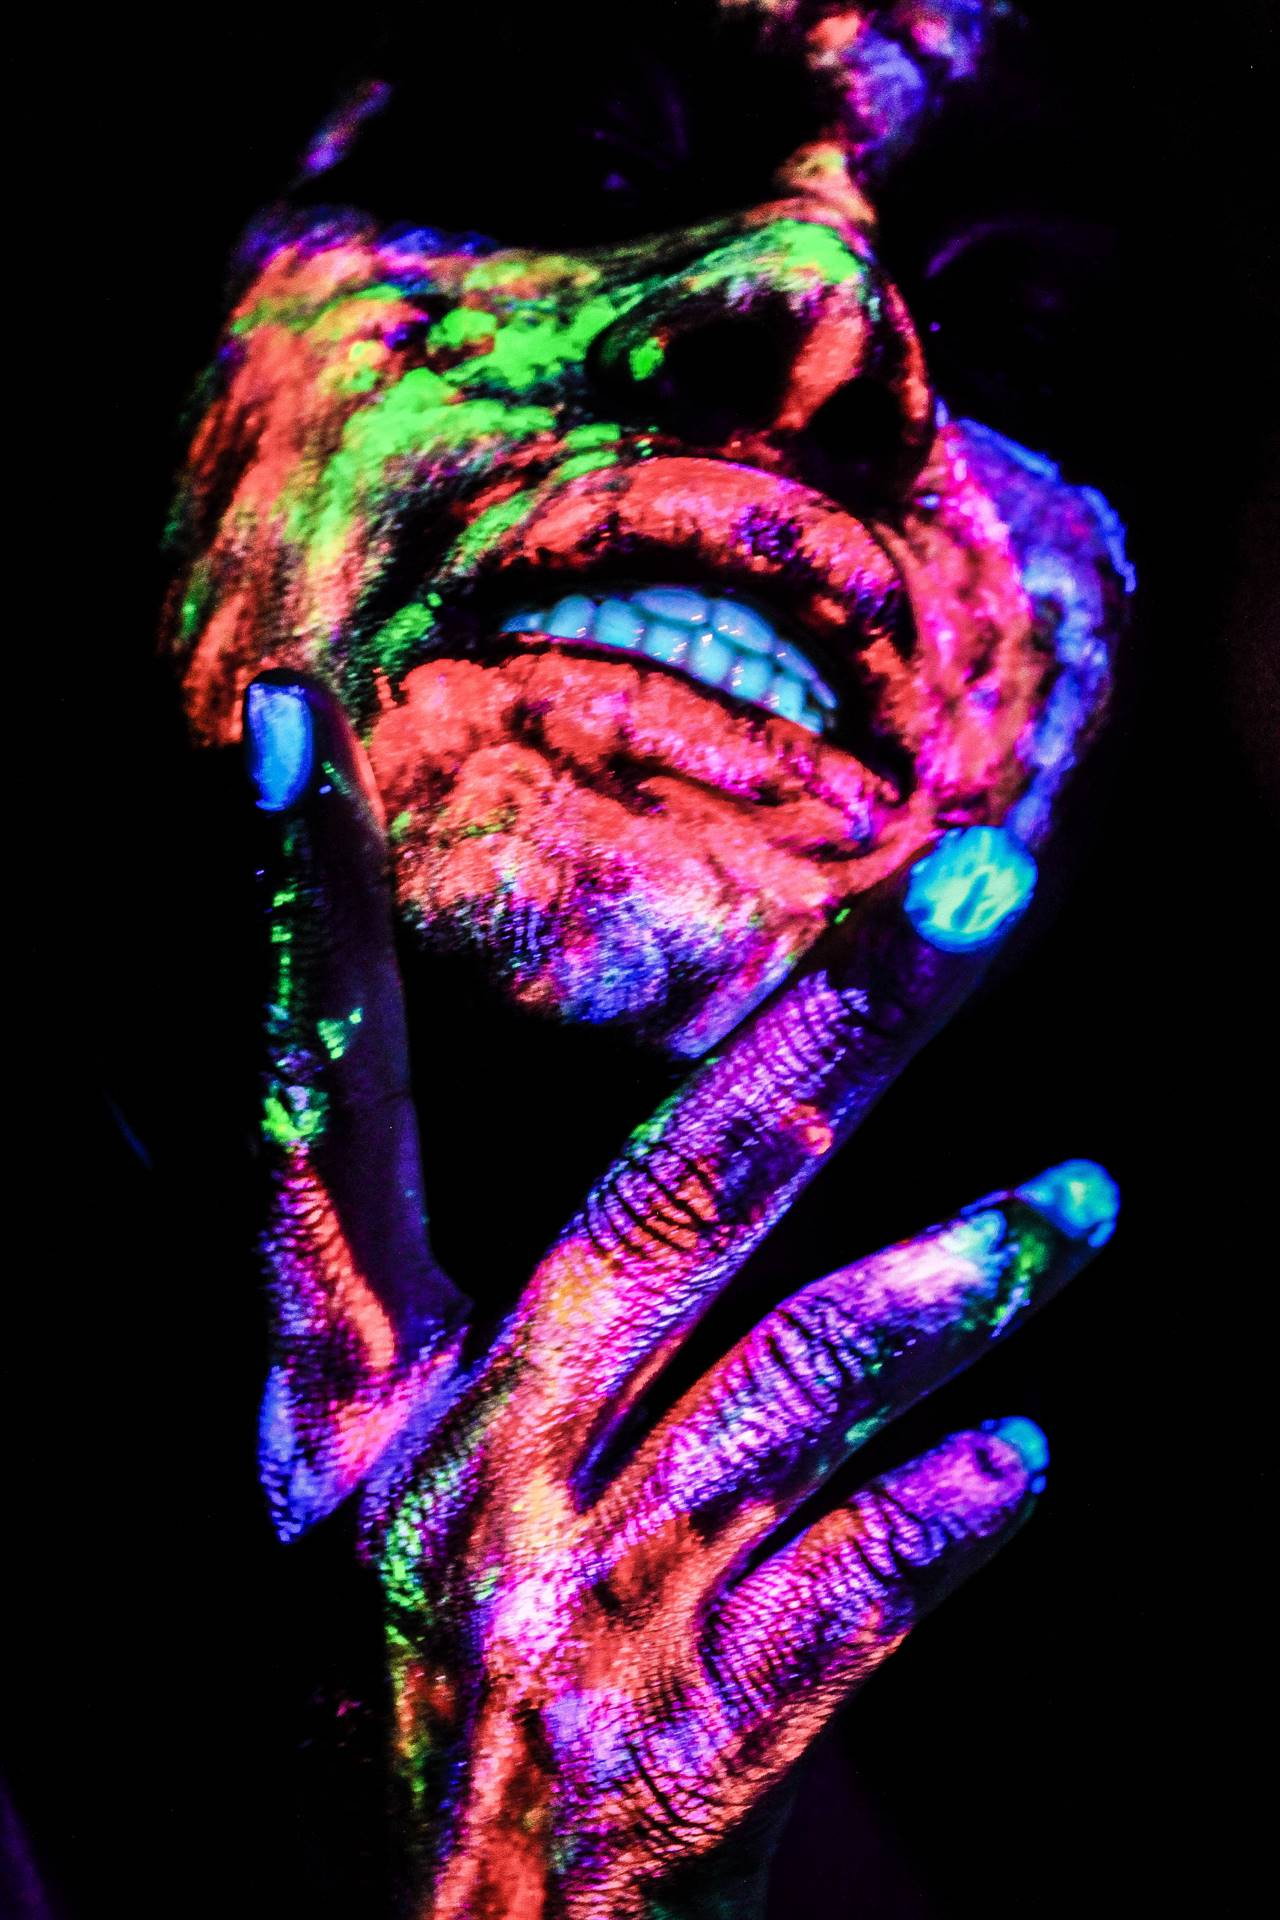 Colorful blacklight portrait of a person's face and hand